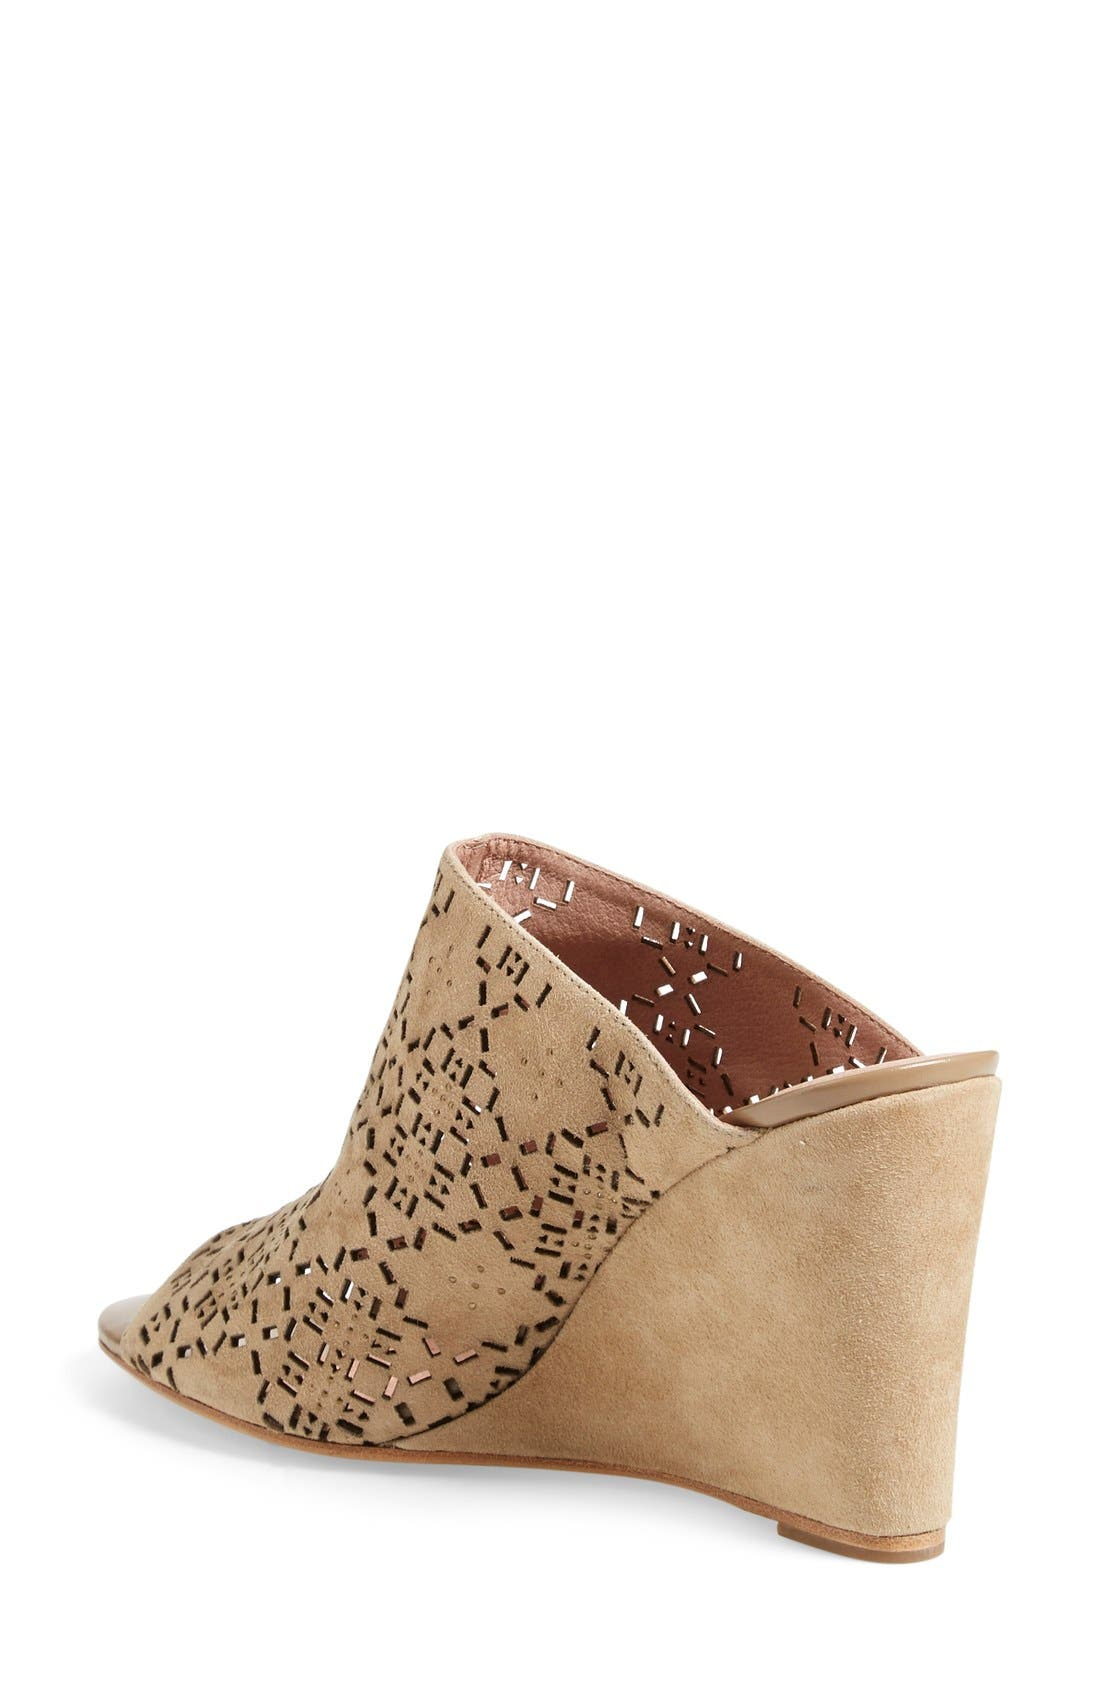 Alternate Image 2  - Joie 'Anita' Wedge Sandal (Women)